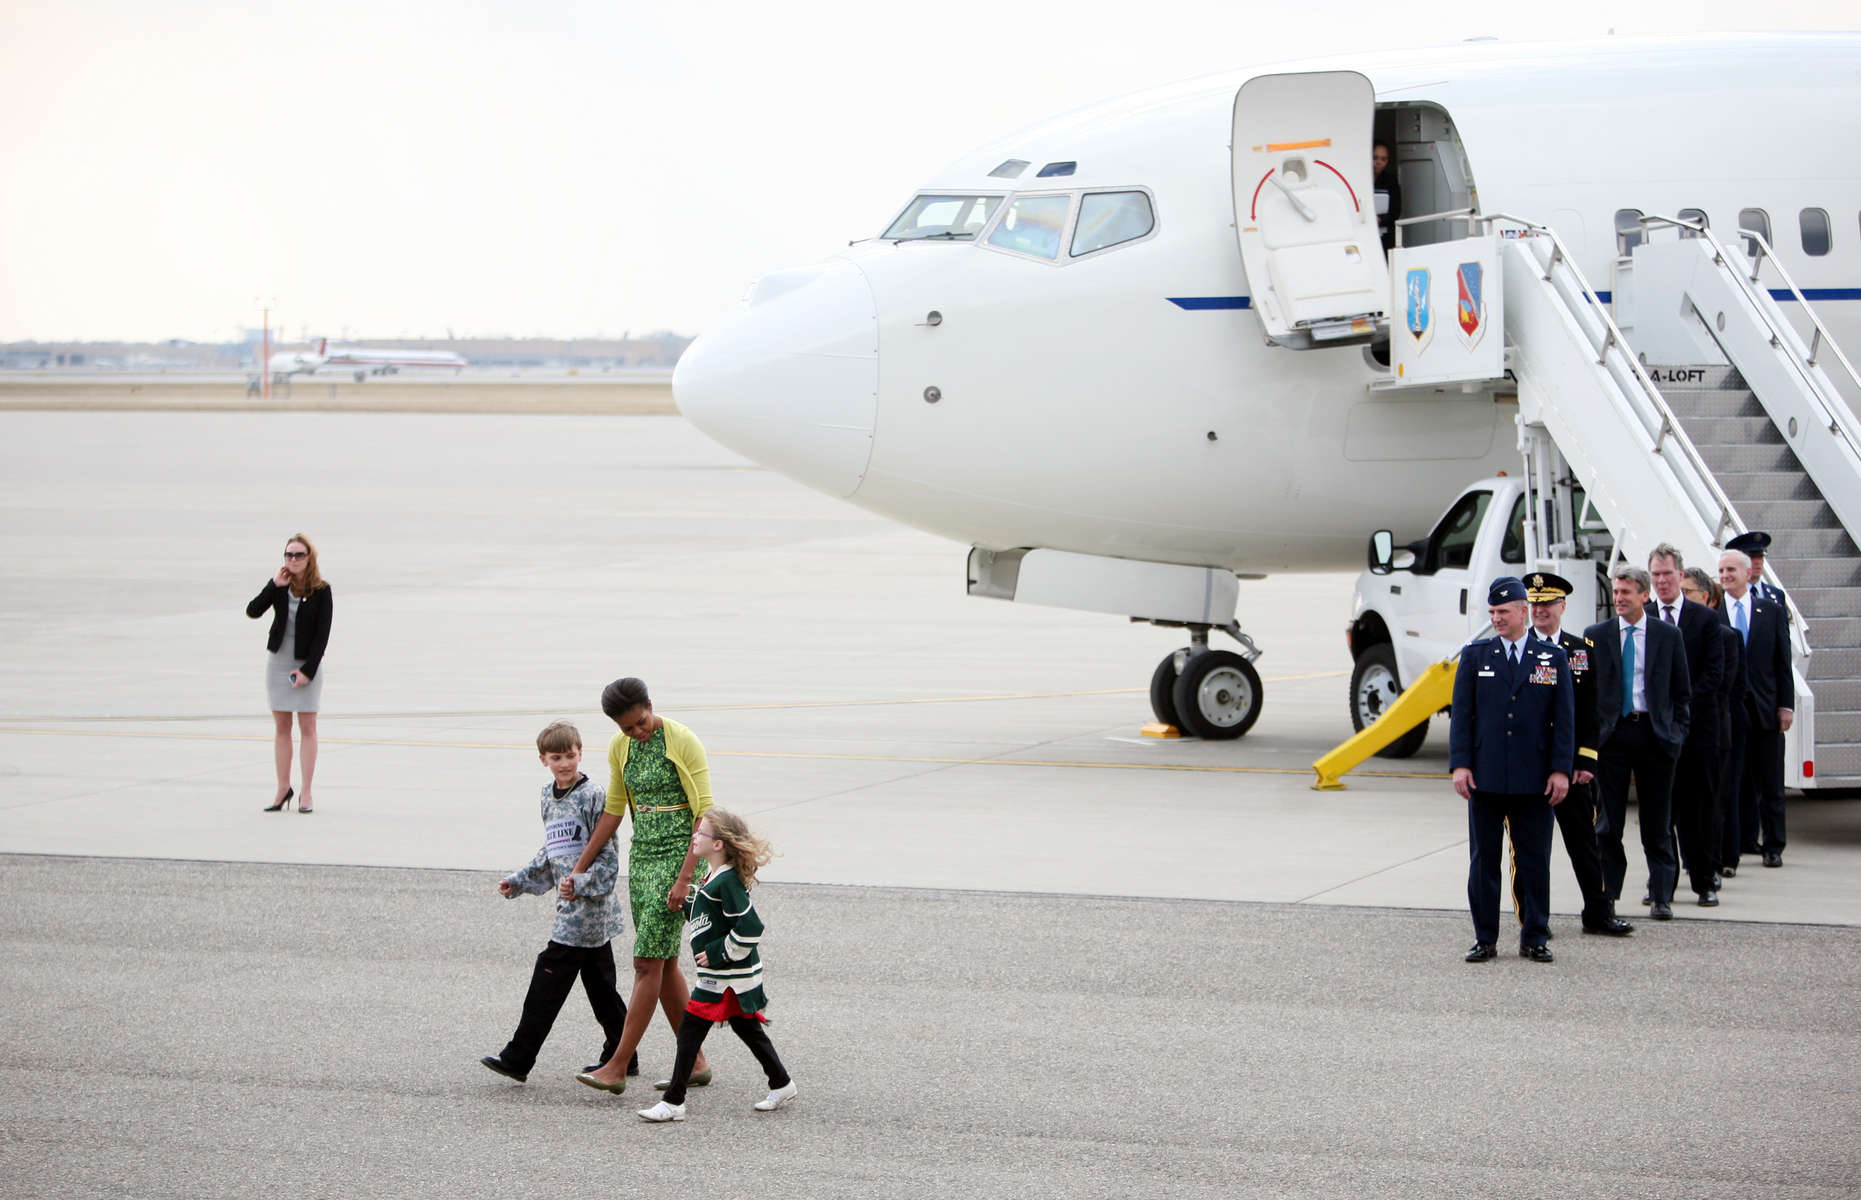 Joseph Hudella, 10, and Megan Soukup, 9, escort First Lady Michelle Obama to meet with Minnesota National Guard members and their families at Minnesota Air National Guard Base's 133rd Airlift Wing in St. Paul, Minn.